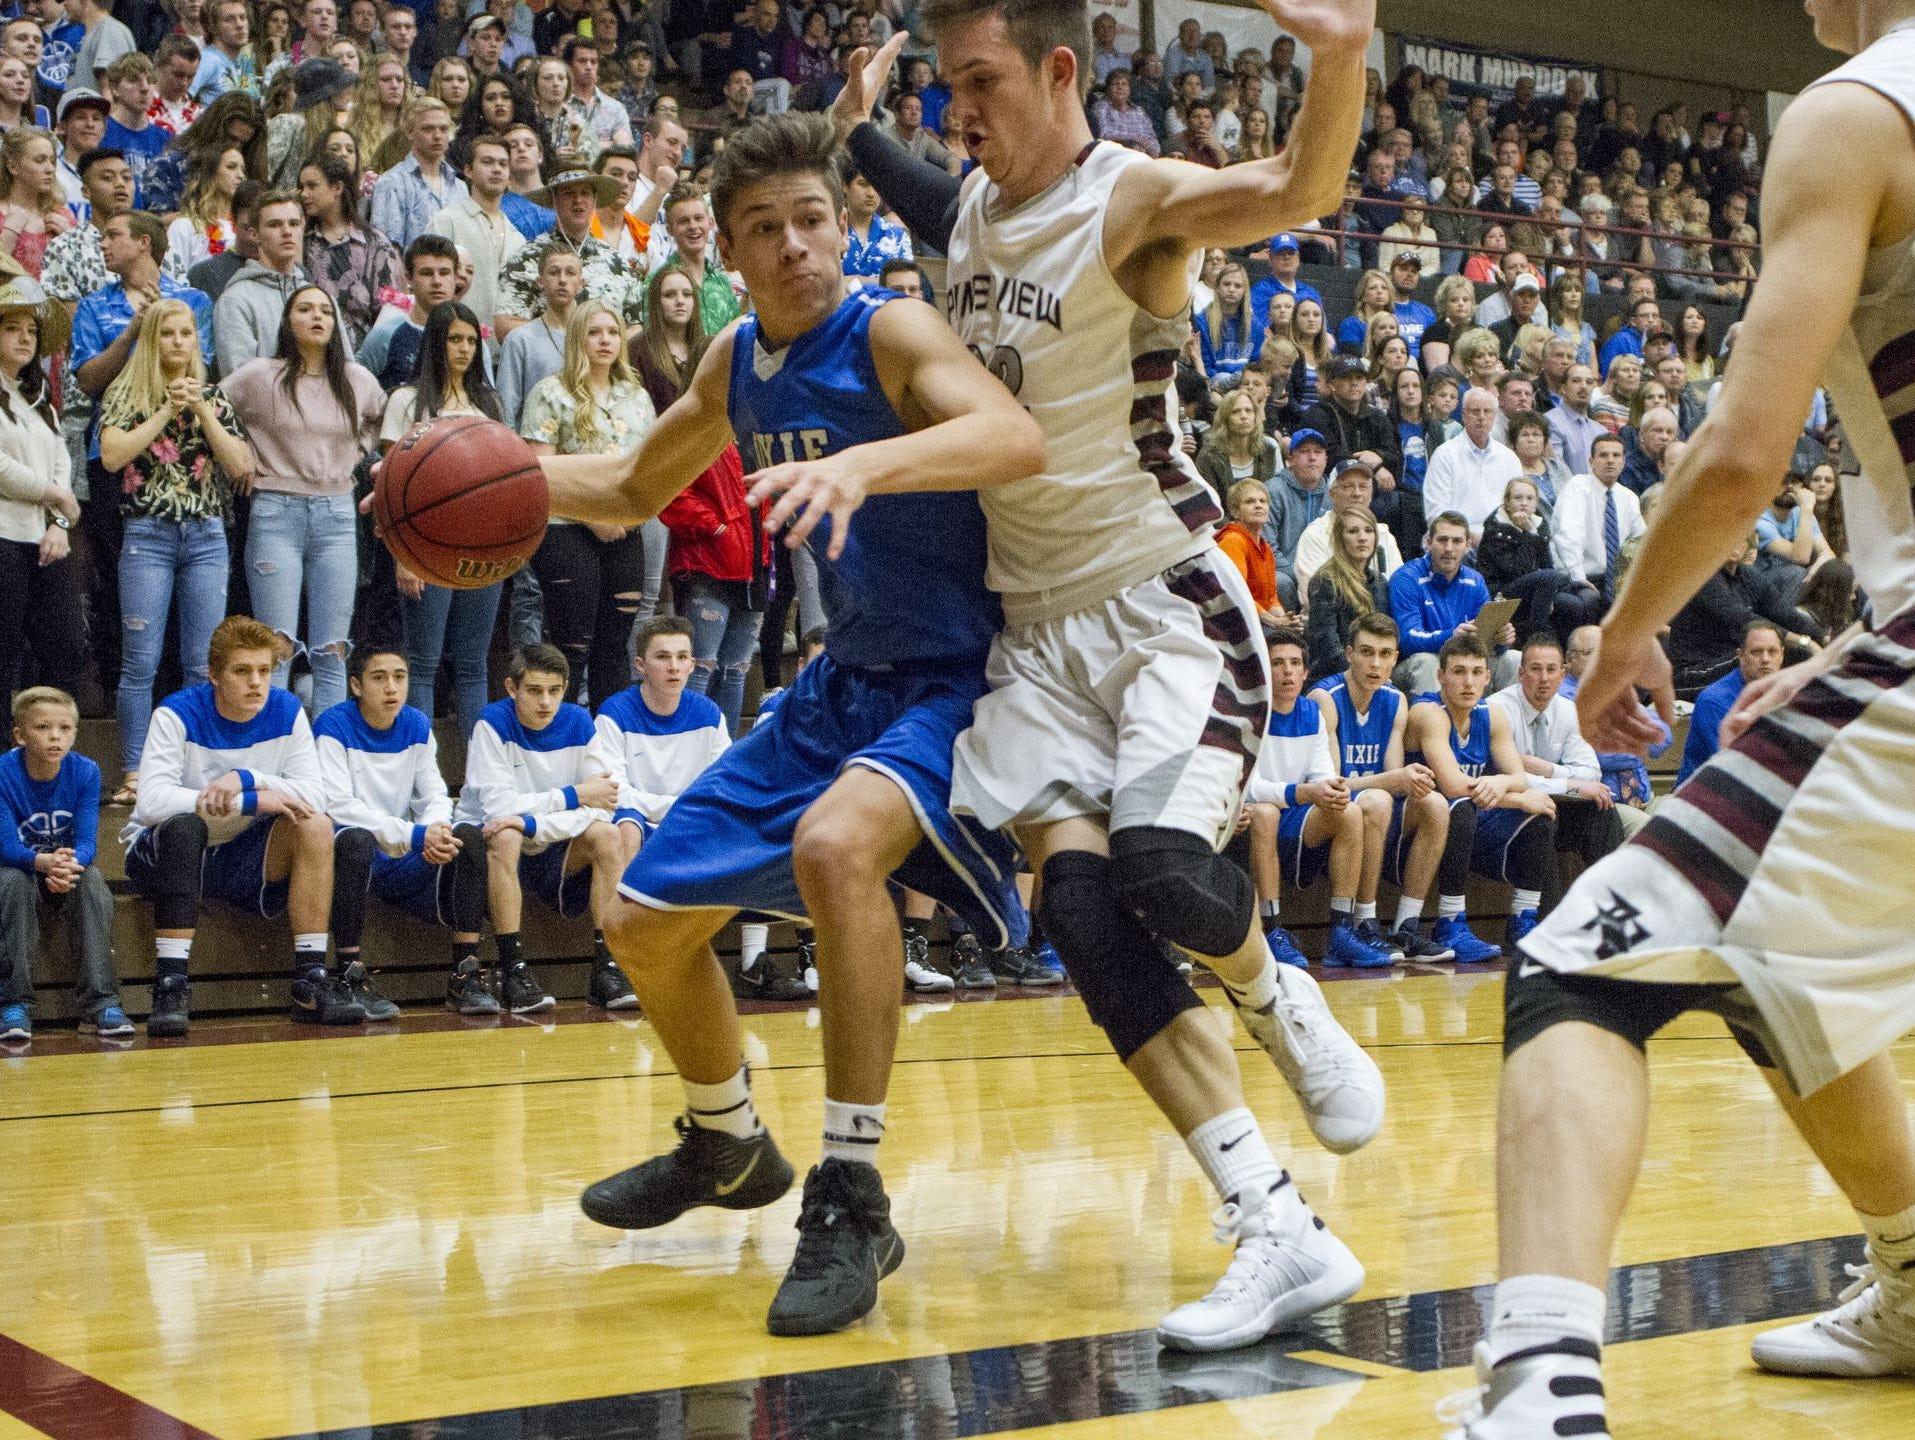 Dixie's Tyler Bennett has hit a lot of big shots in his high school career which is why coaches have nicknamed him the LeBron James of Region 9.